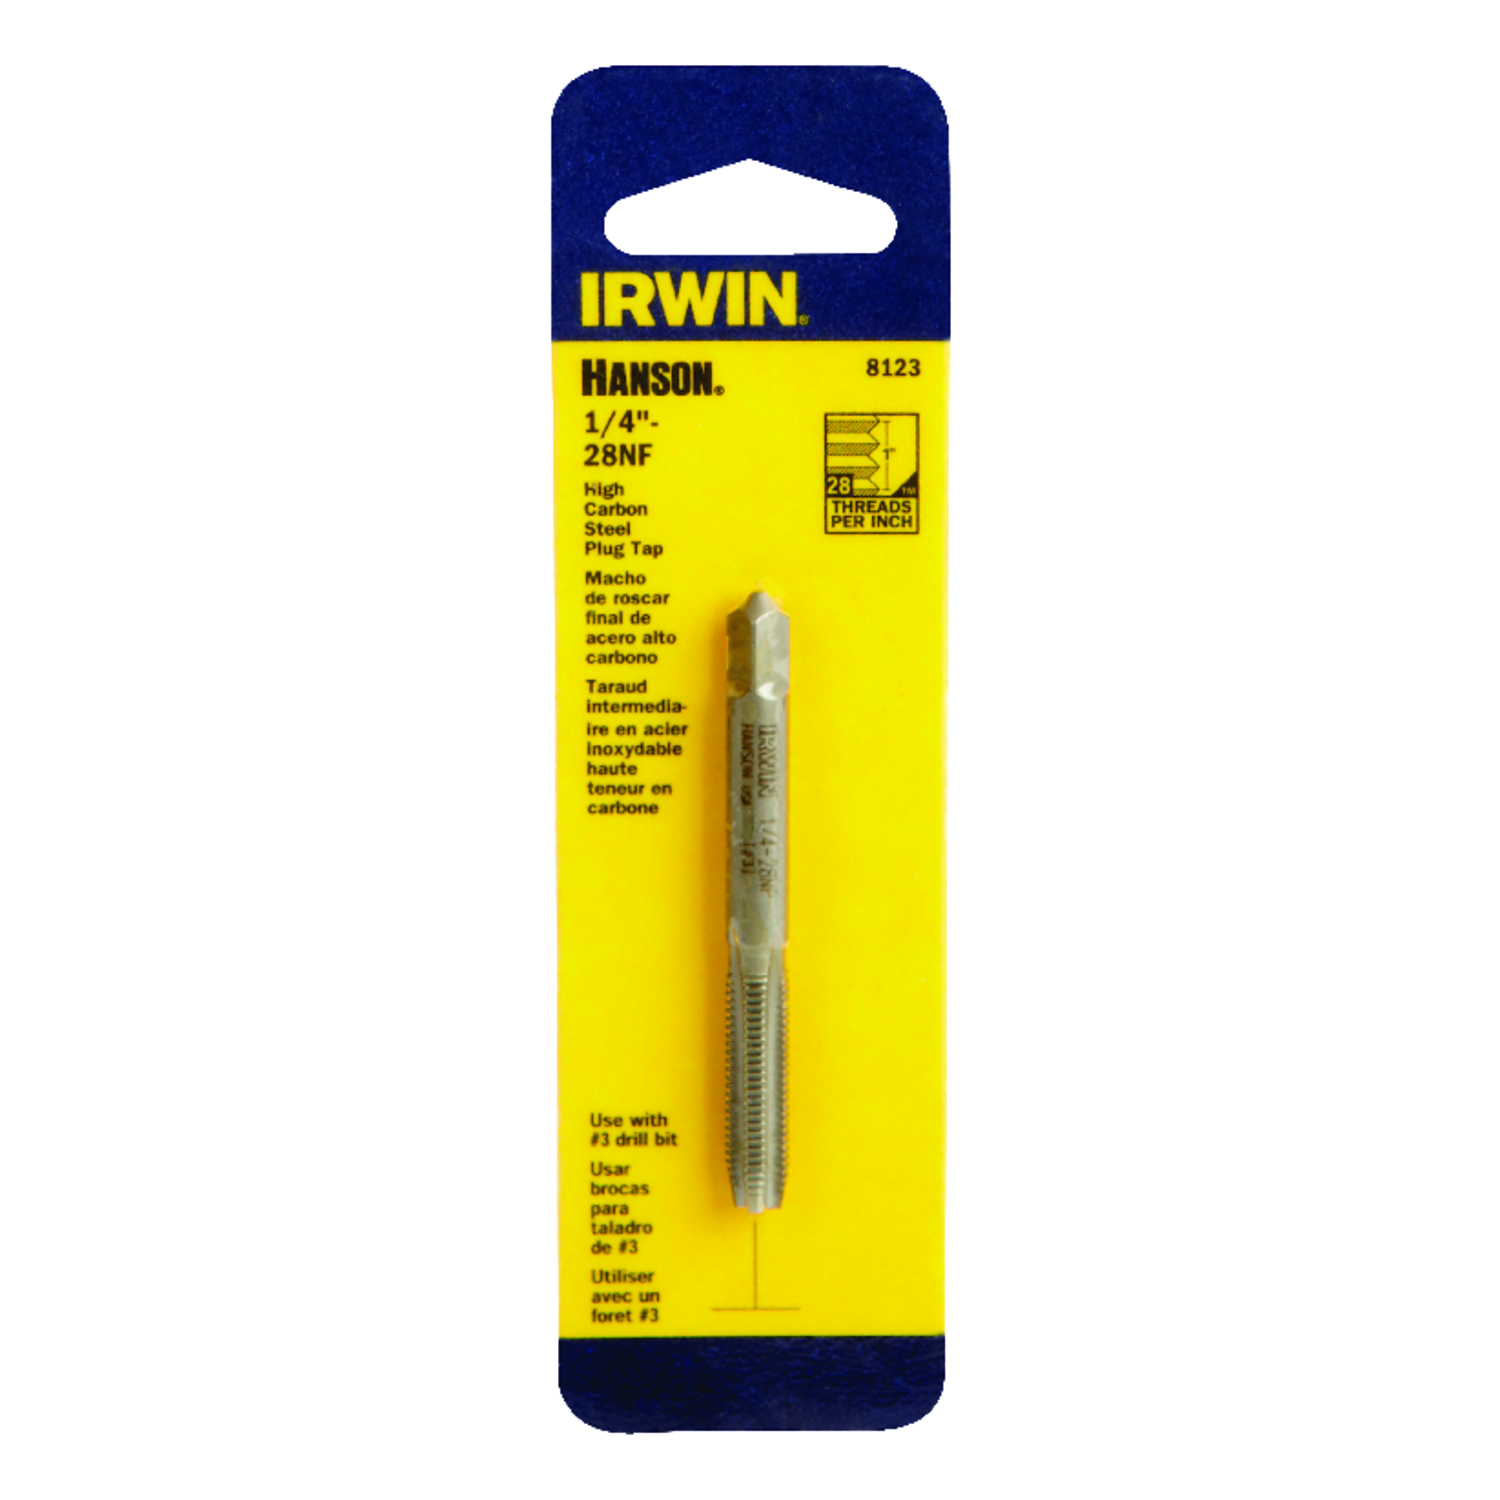 Irwin  Hanson  High Carbon Steel  SAE  Fraction Tap  1/4 in.-28NF  1 pc.